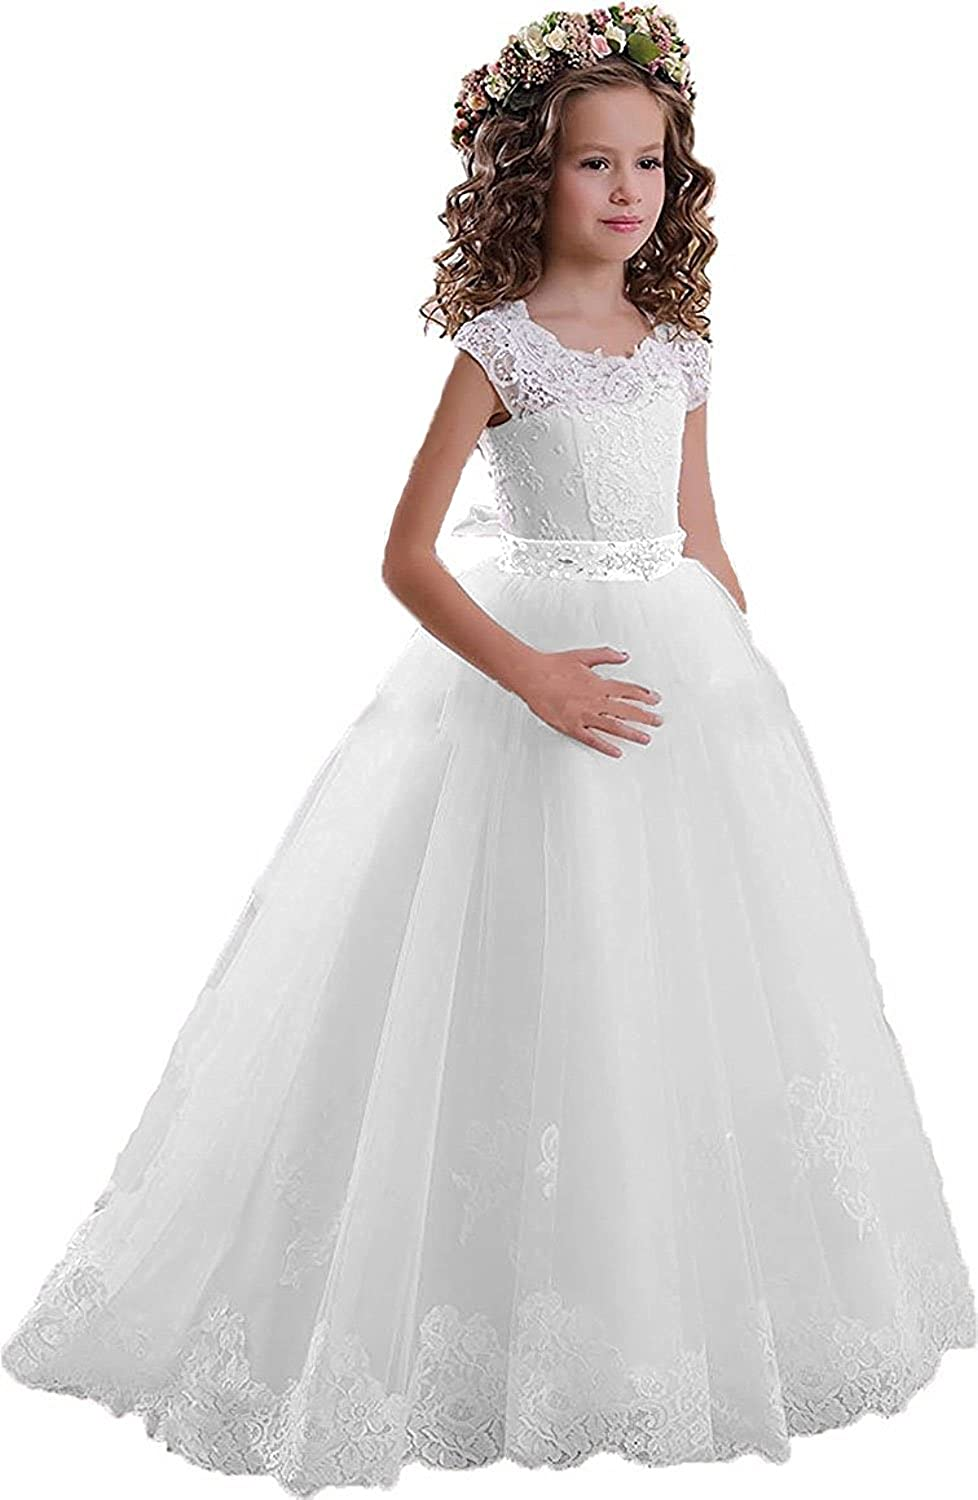 KissAngel White Lace Flower Girl Dresses Ivory Drill Less Party Dress for  Wedding